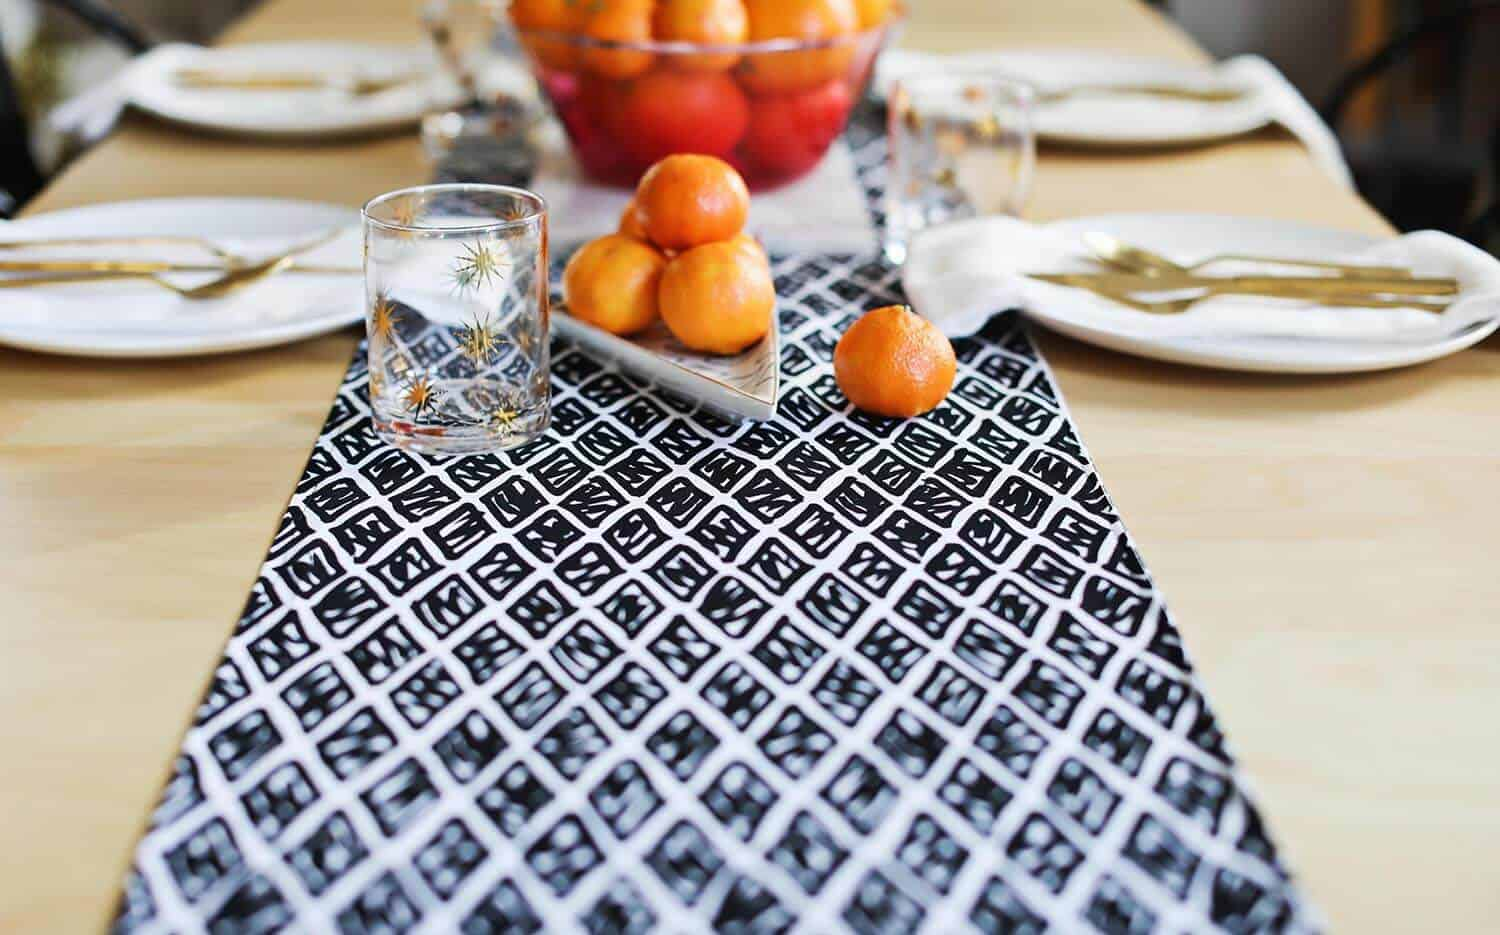 The Black Fabric In Pattern Matches Our Dining Chairs Too Which Is Also A Win Another Option To Consider While Designing Your Table Runner Use